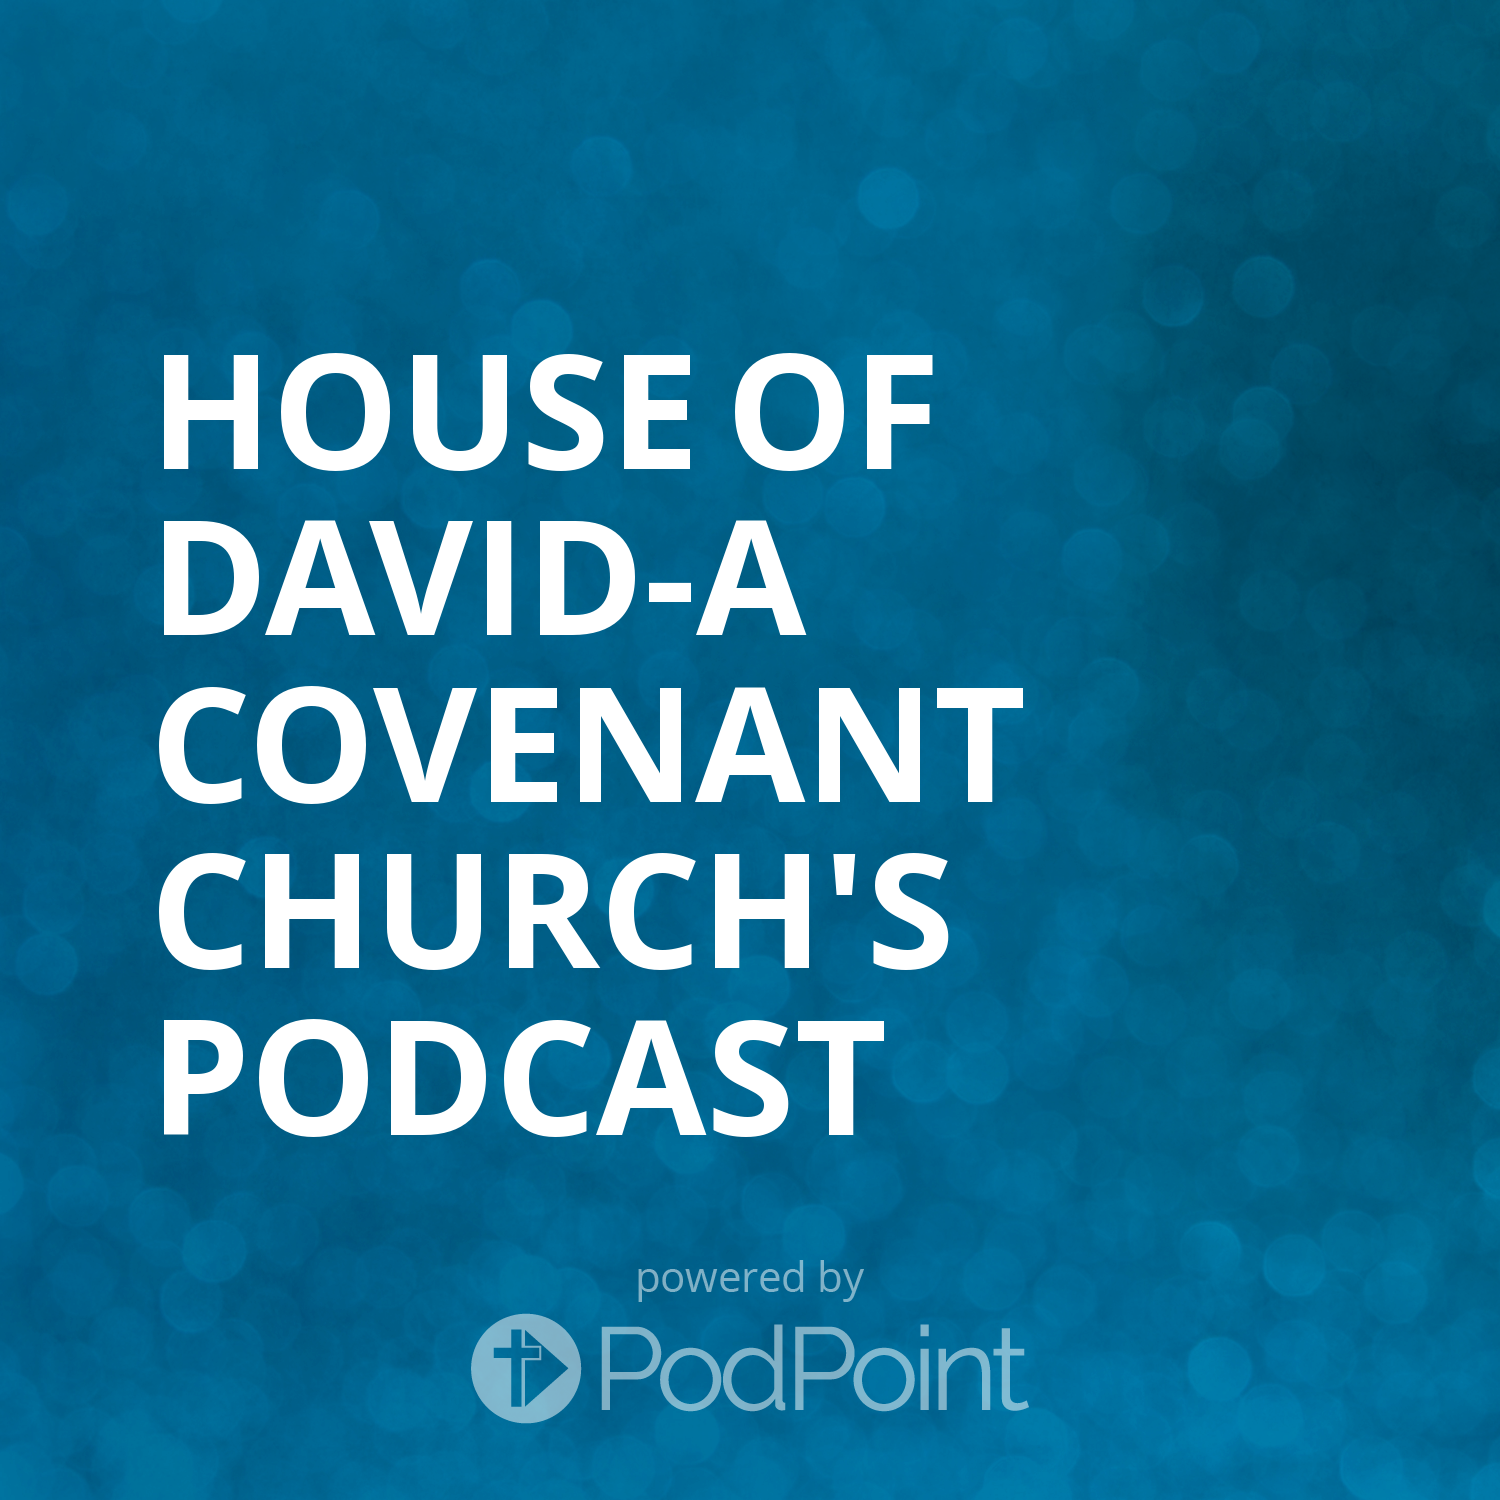 House of David-A Covenant Church's Podcast